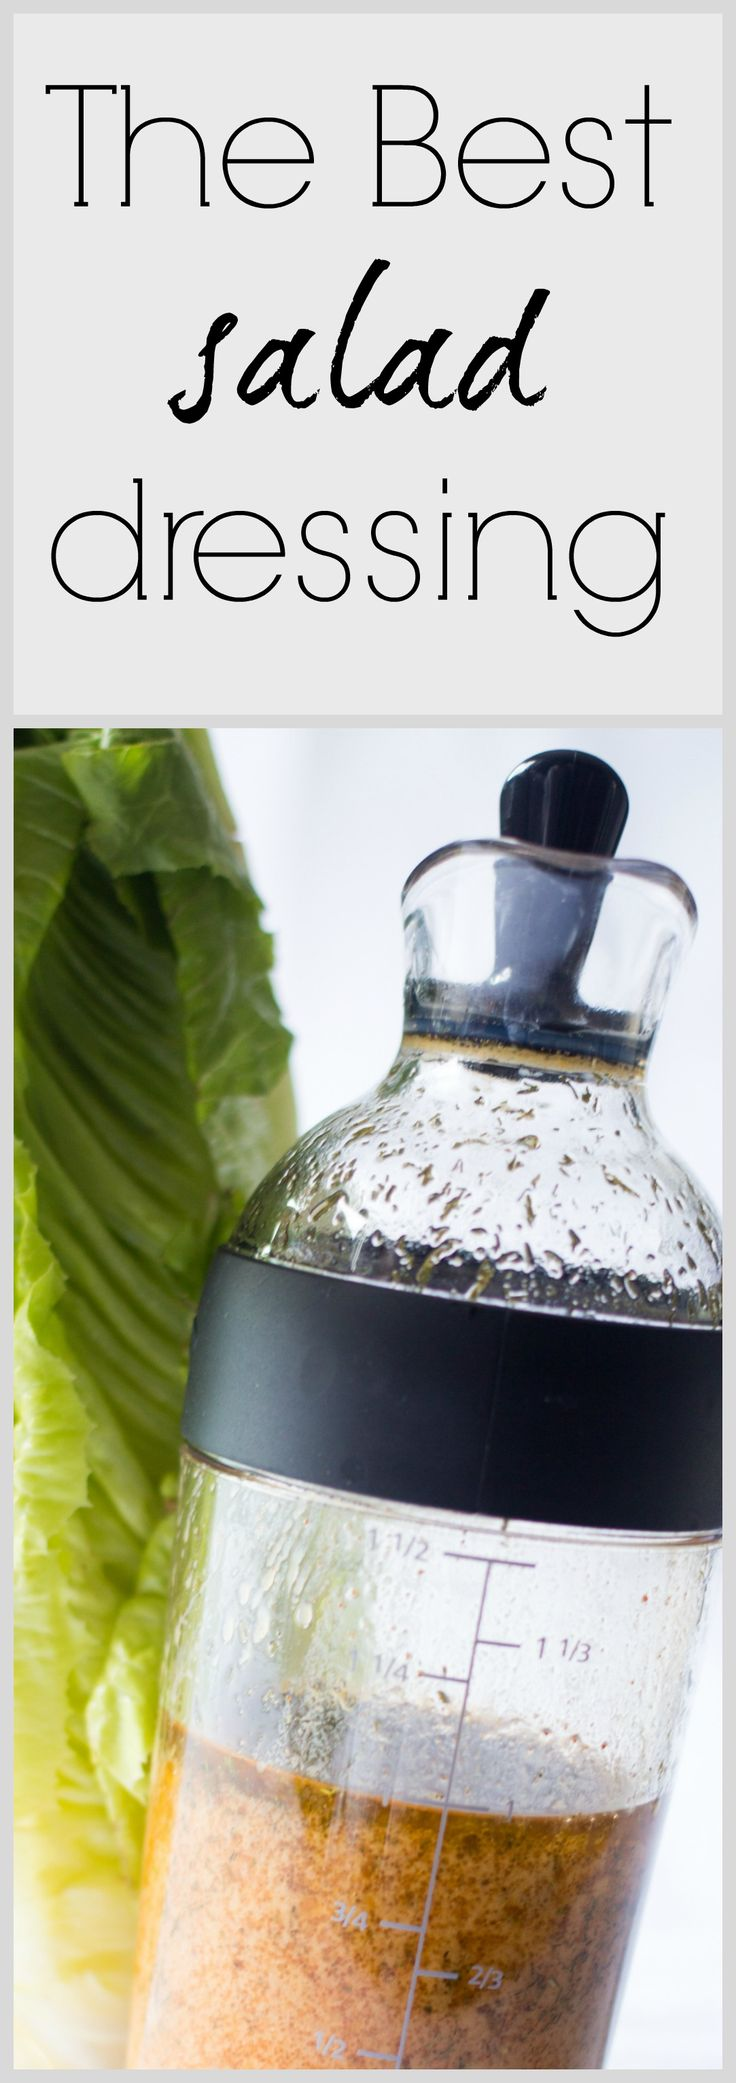 Since I discovered this dressing, I really think it's the best! I'm make it almost every week and the whole family loves it! Really tasty with a little dill flavor and sweet little taste. - recipe for salad dressing -http://www.nobletandem.com/recipe/best-salad-dressing-ever/